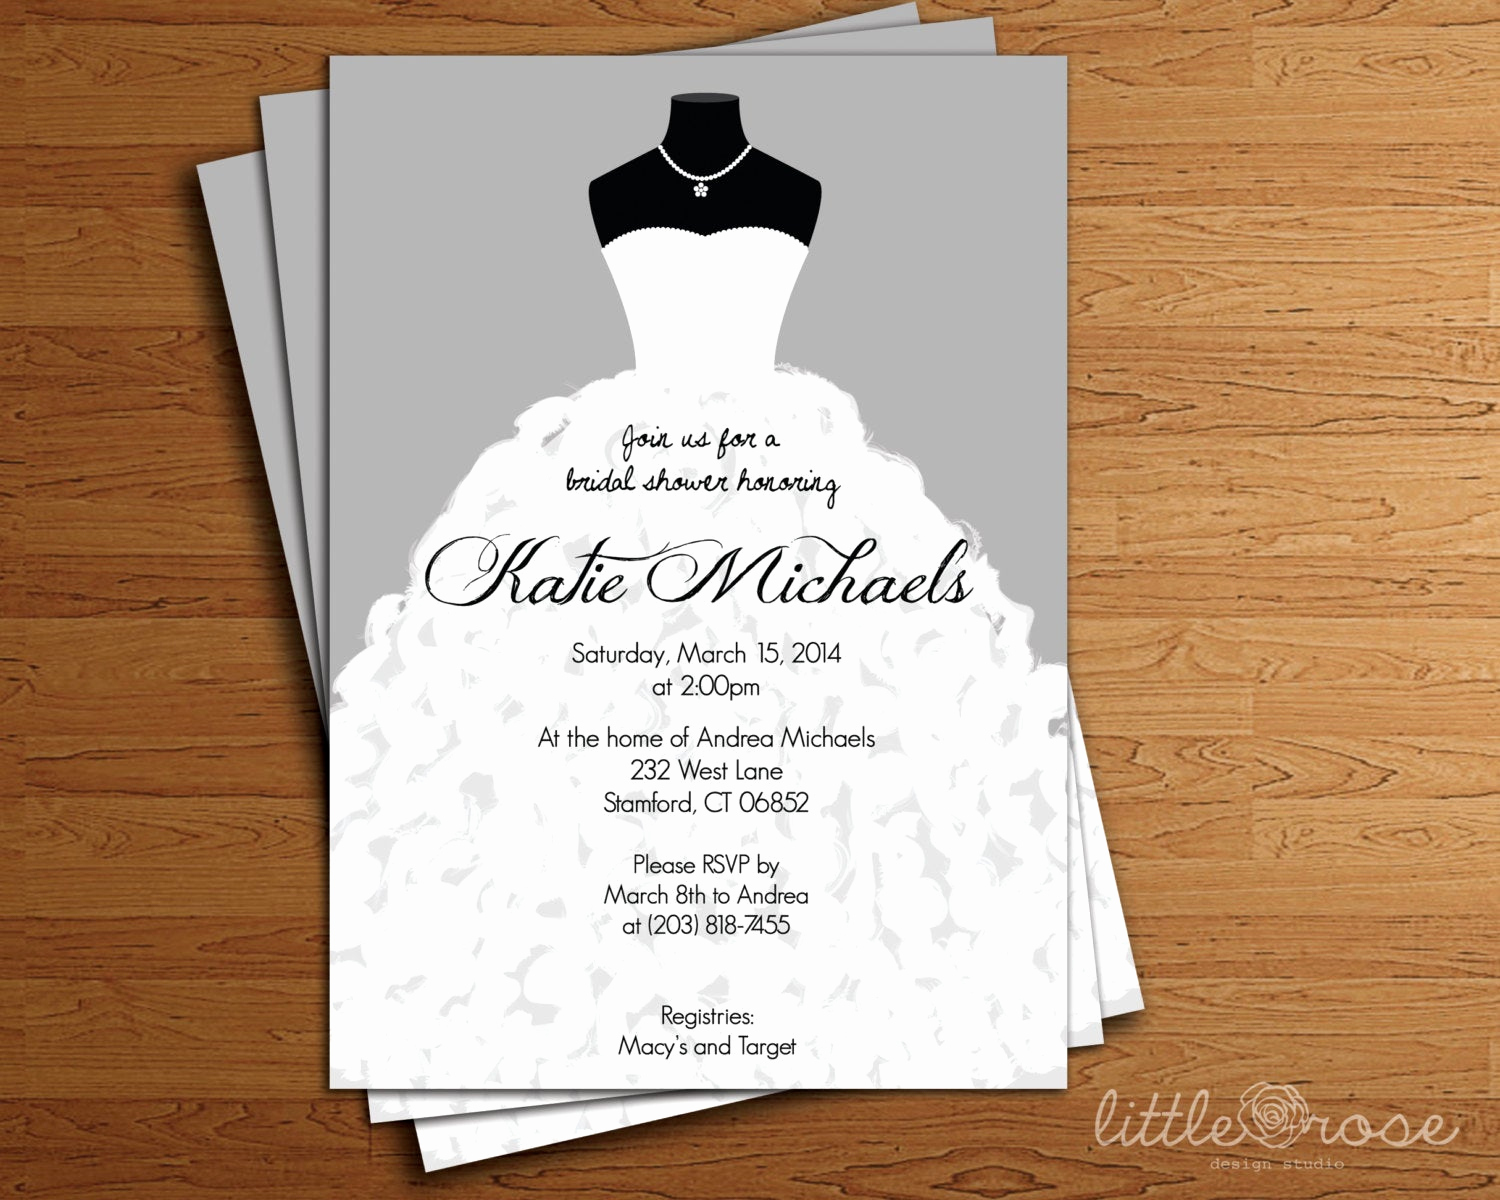 Free Bridal Shower Invitations Beautiful Wedding Dress Bridal Shower Invitation Bridal Shower Invite